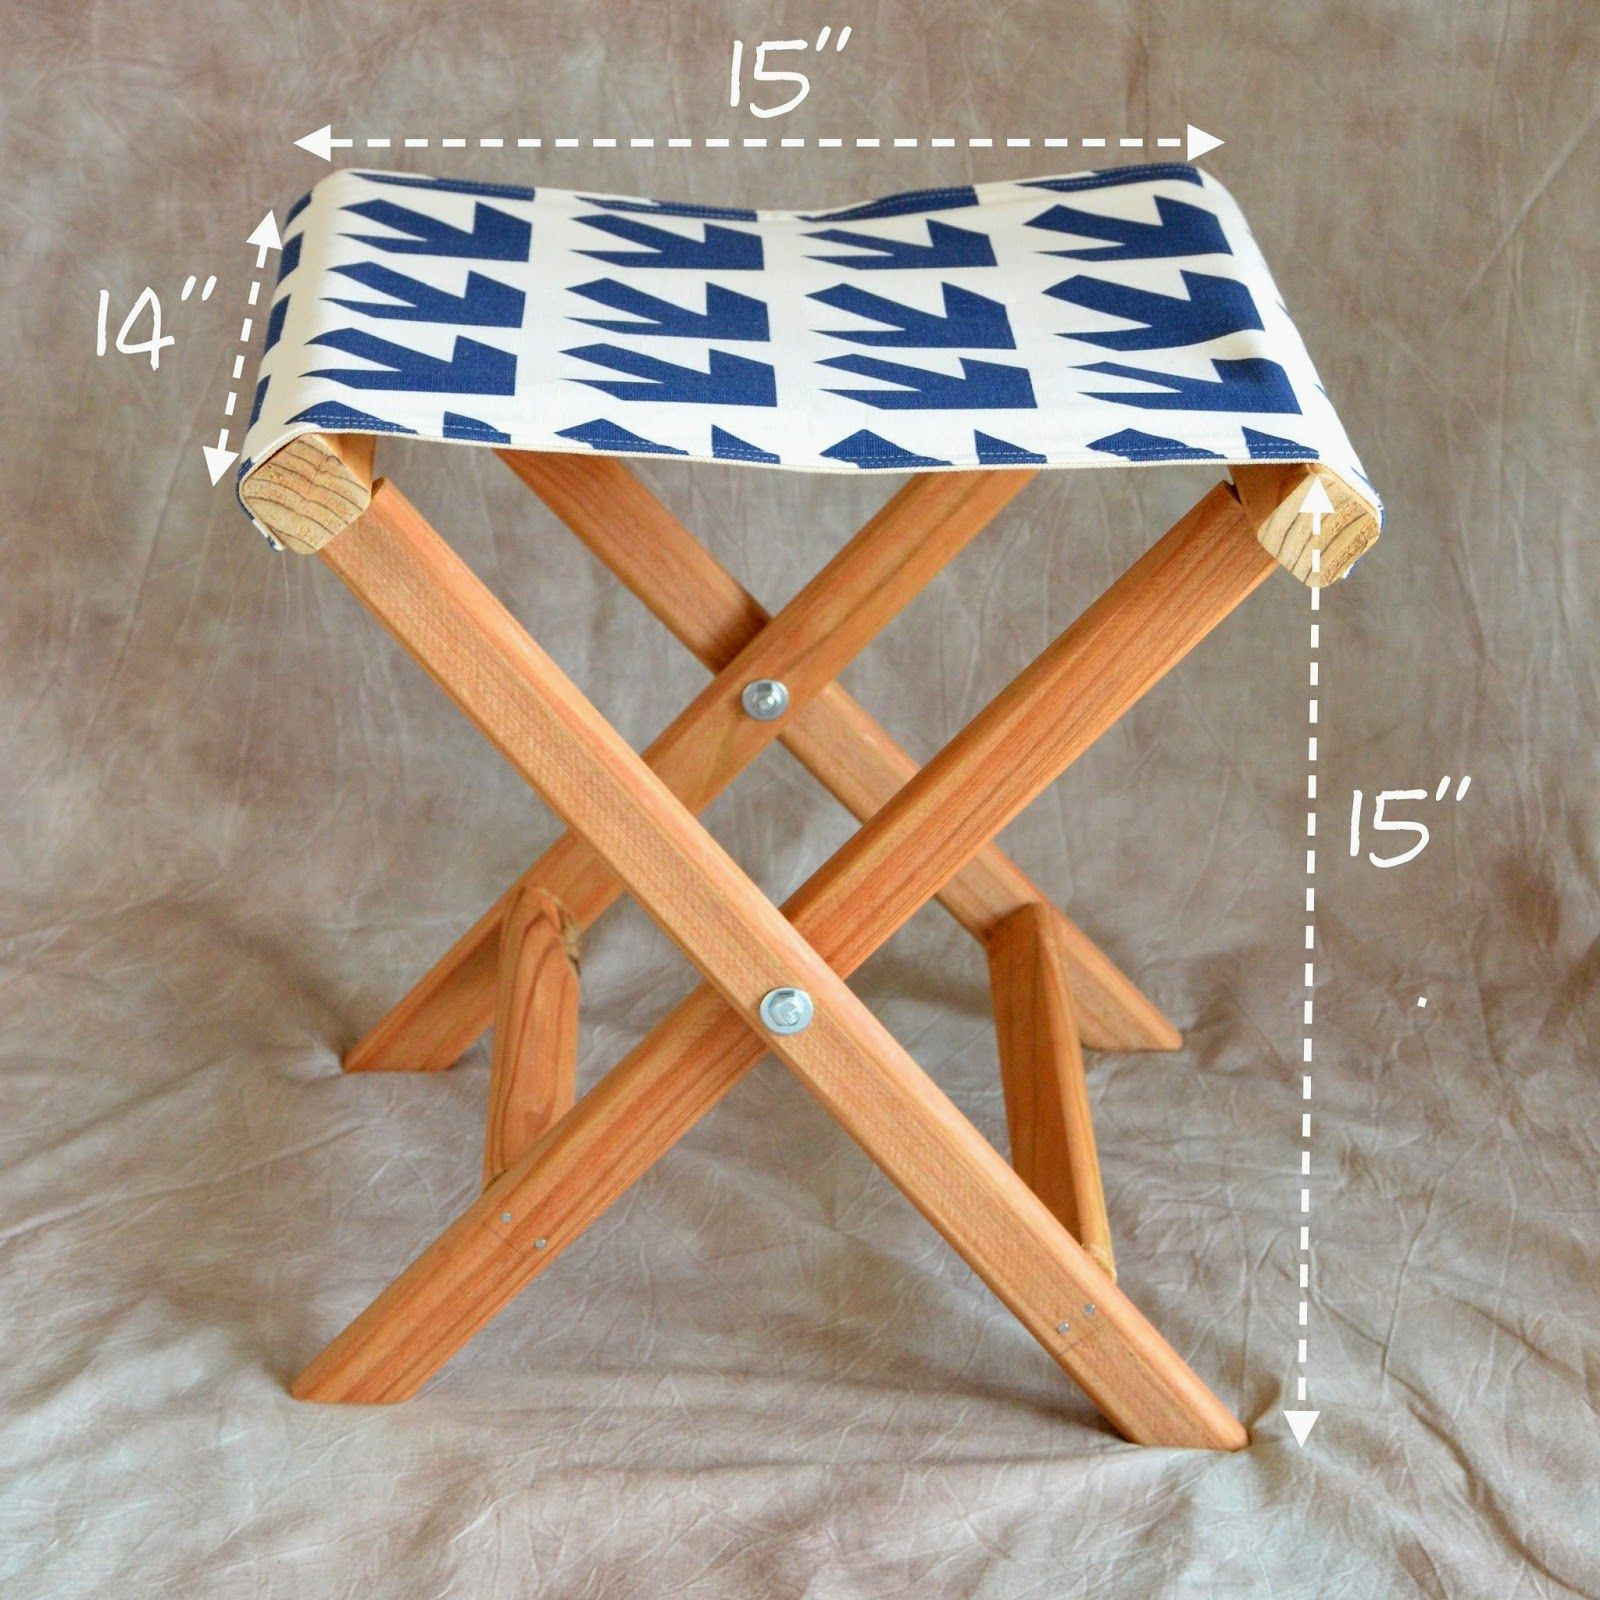 How To Make A Folding Camp Stool This Looks Easy Enough Good